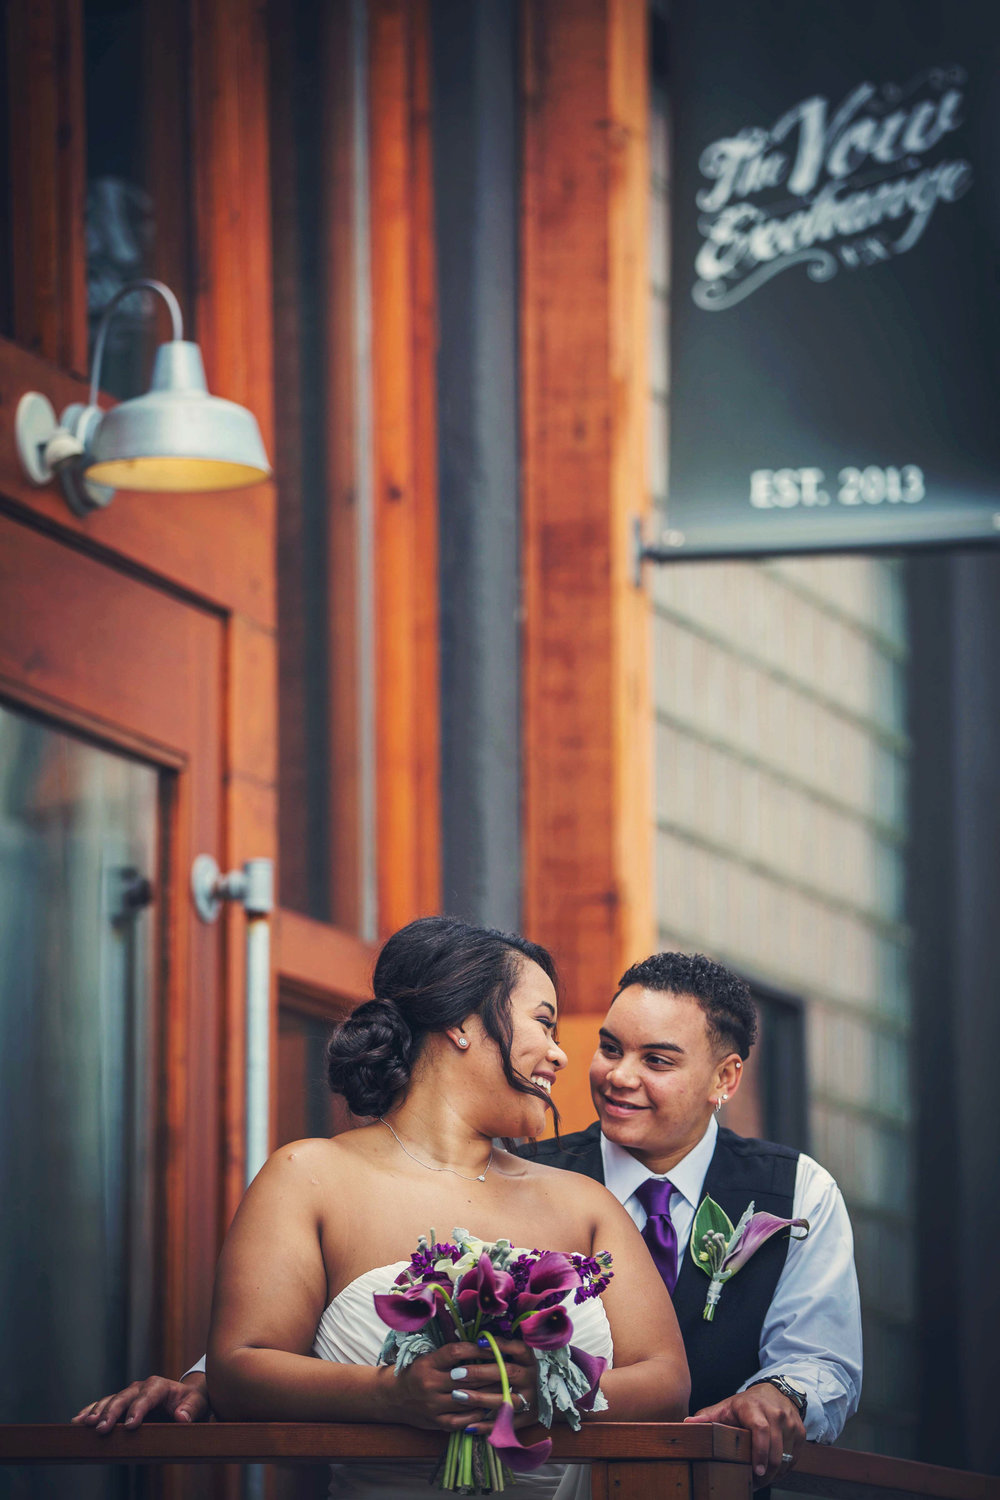 Kansas+City_Small+Wedding_Venue_Elope_Intimate_Ceremony_Constance & Carissa-218b.jpg